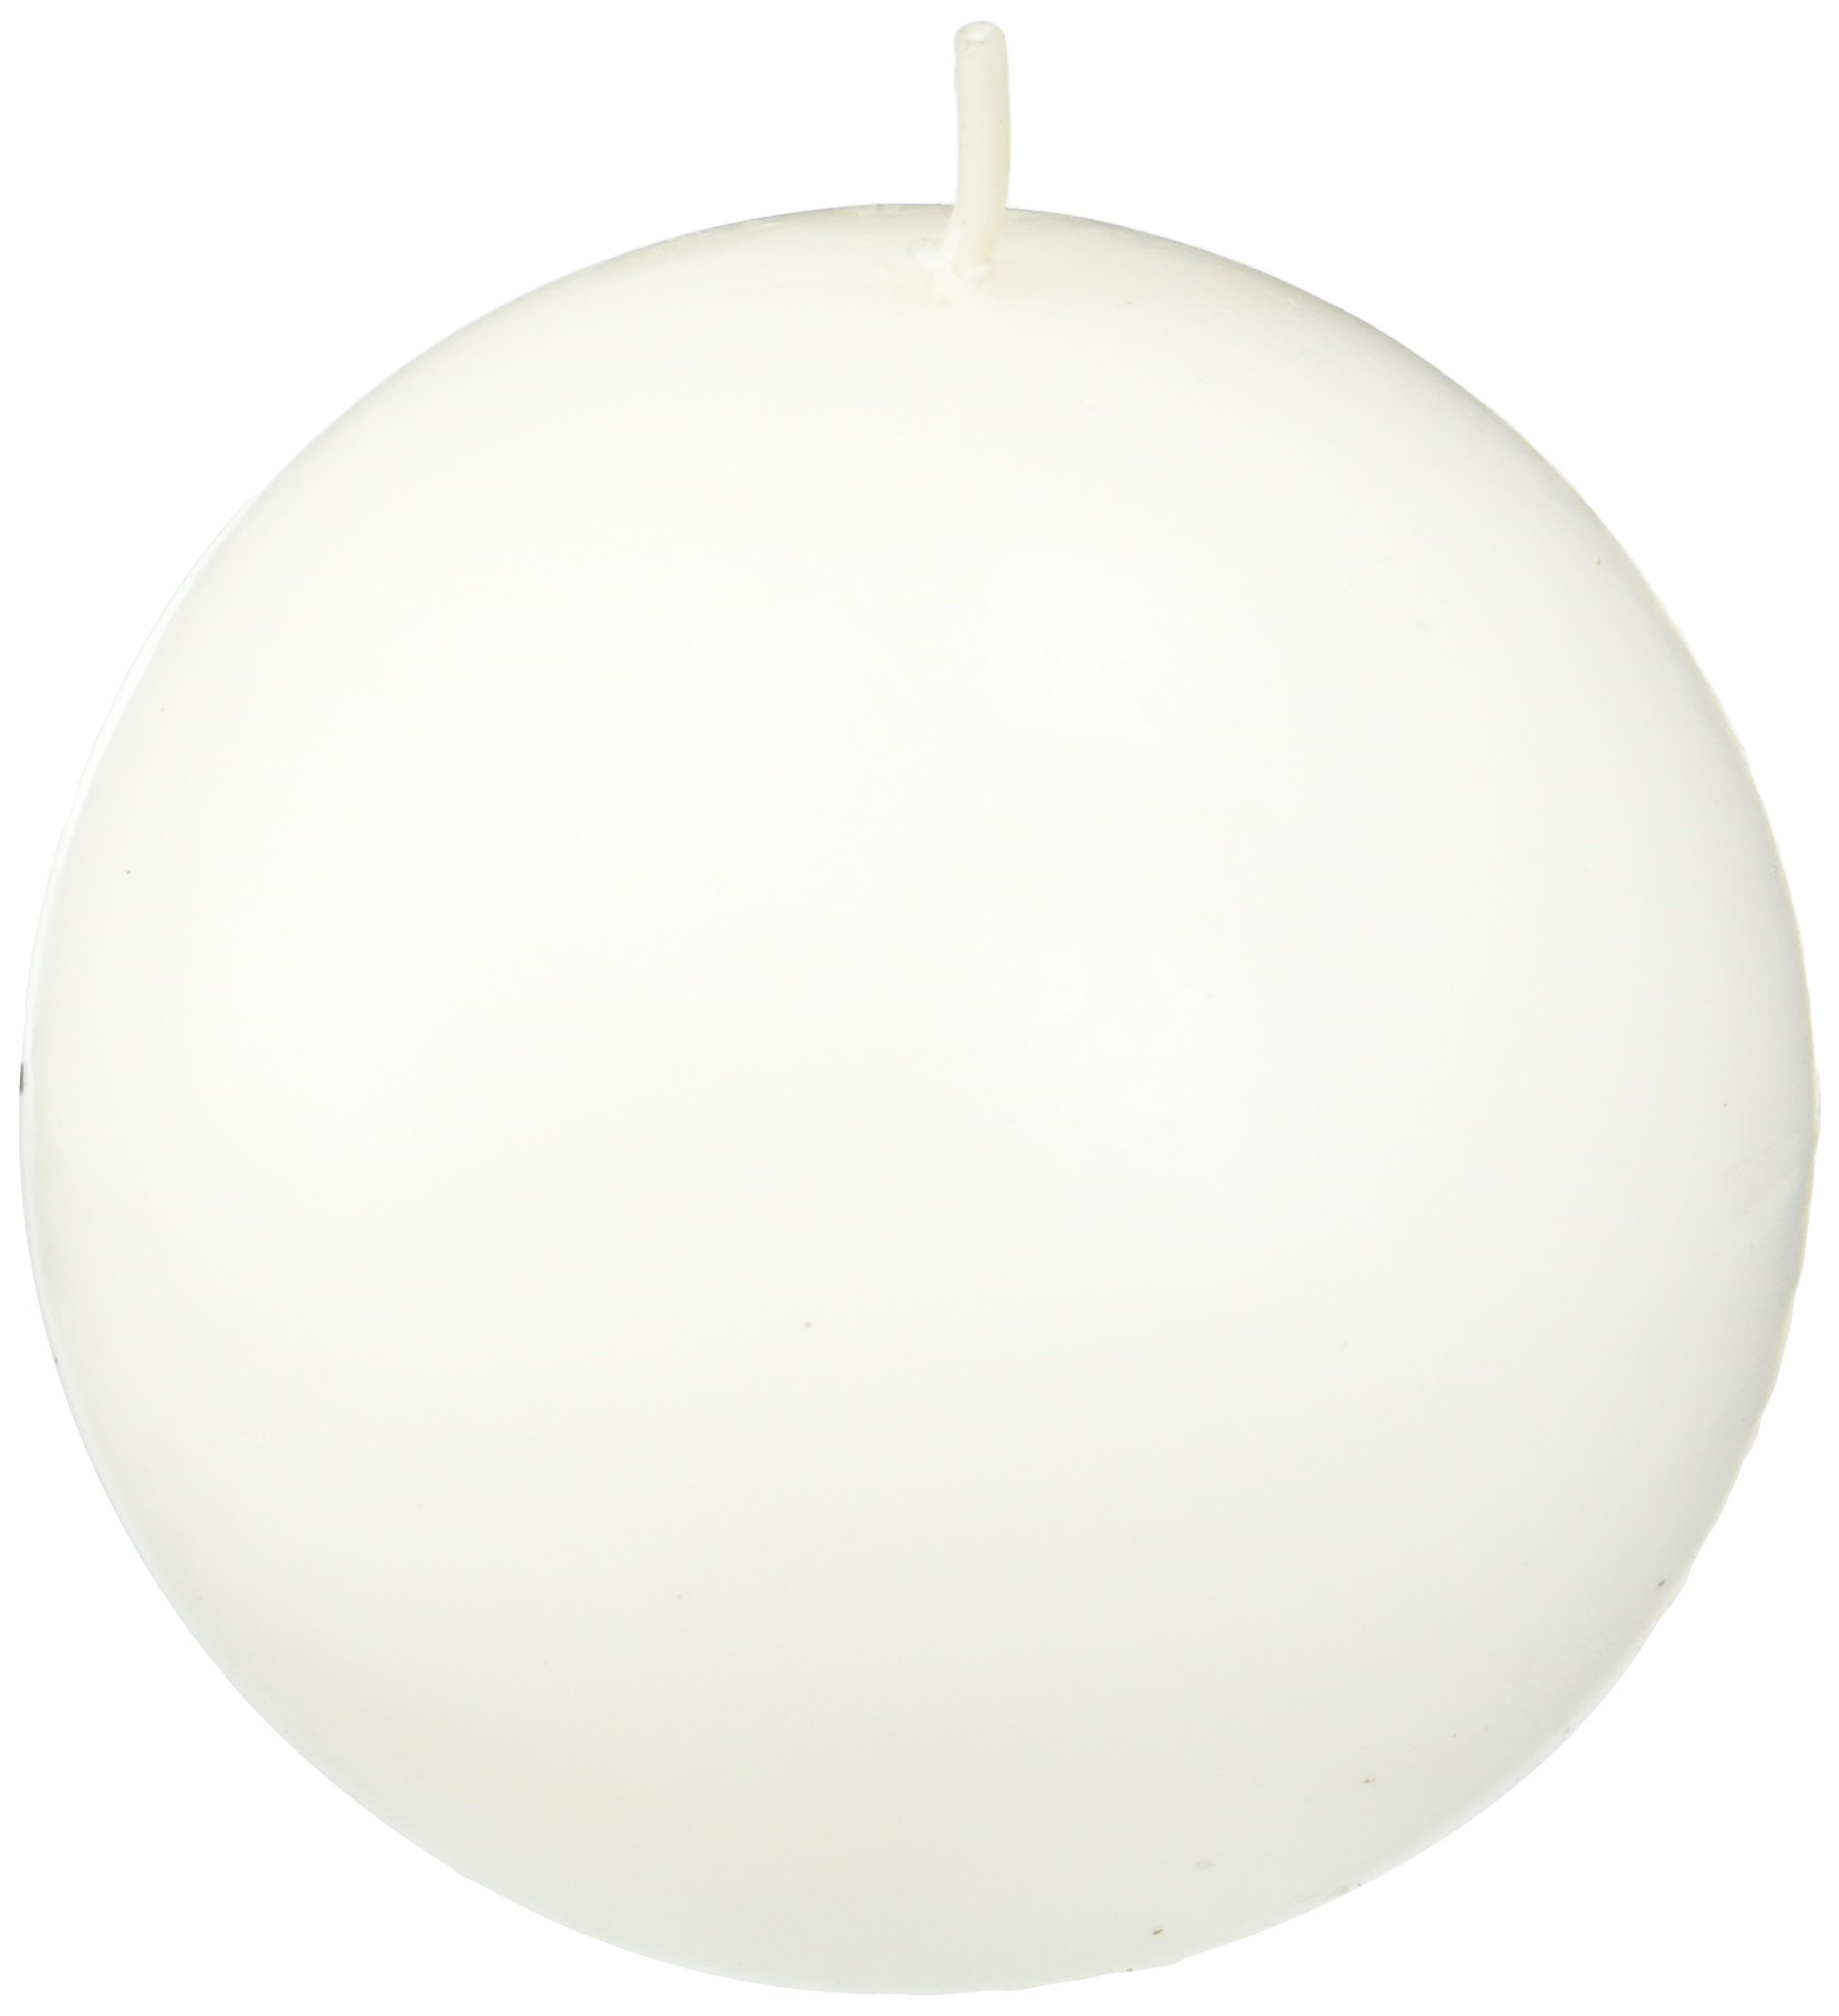 Zest Candle 6-Piece Ball Candles, 3-Inch, White Citronella by Zest Candle